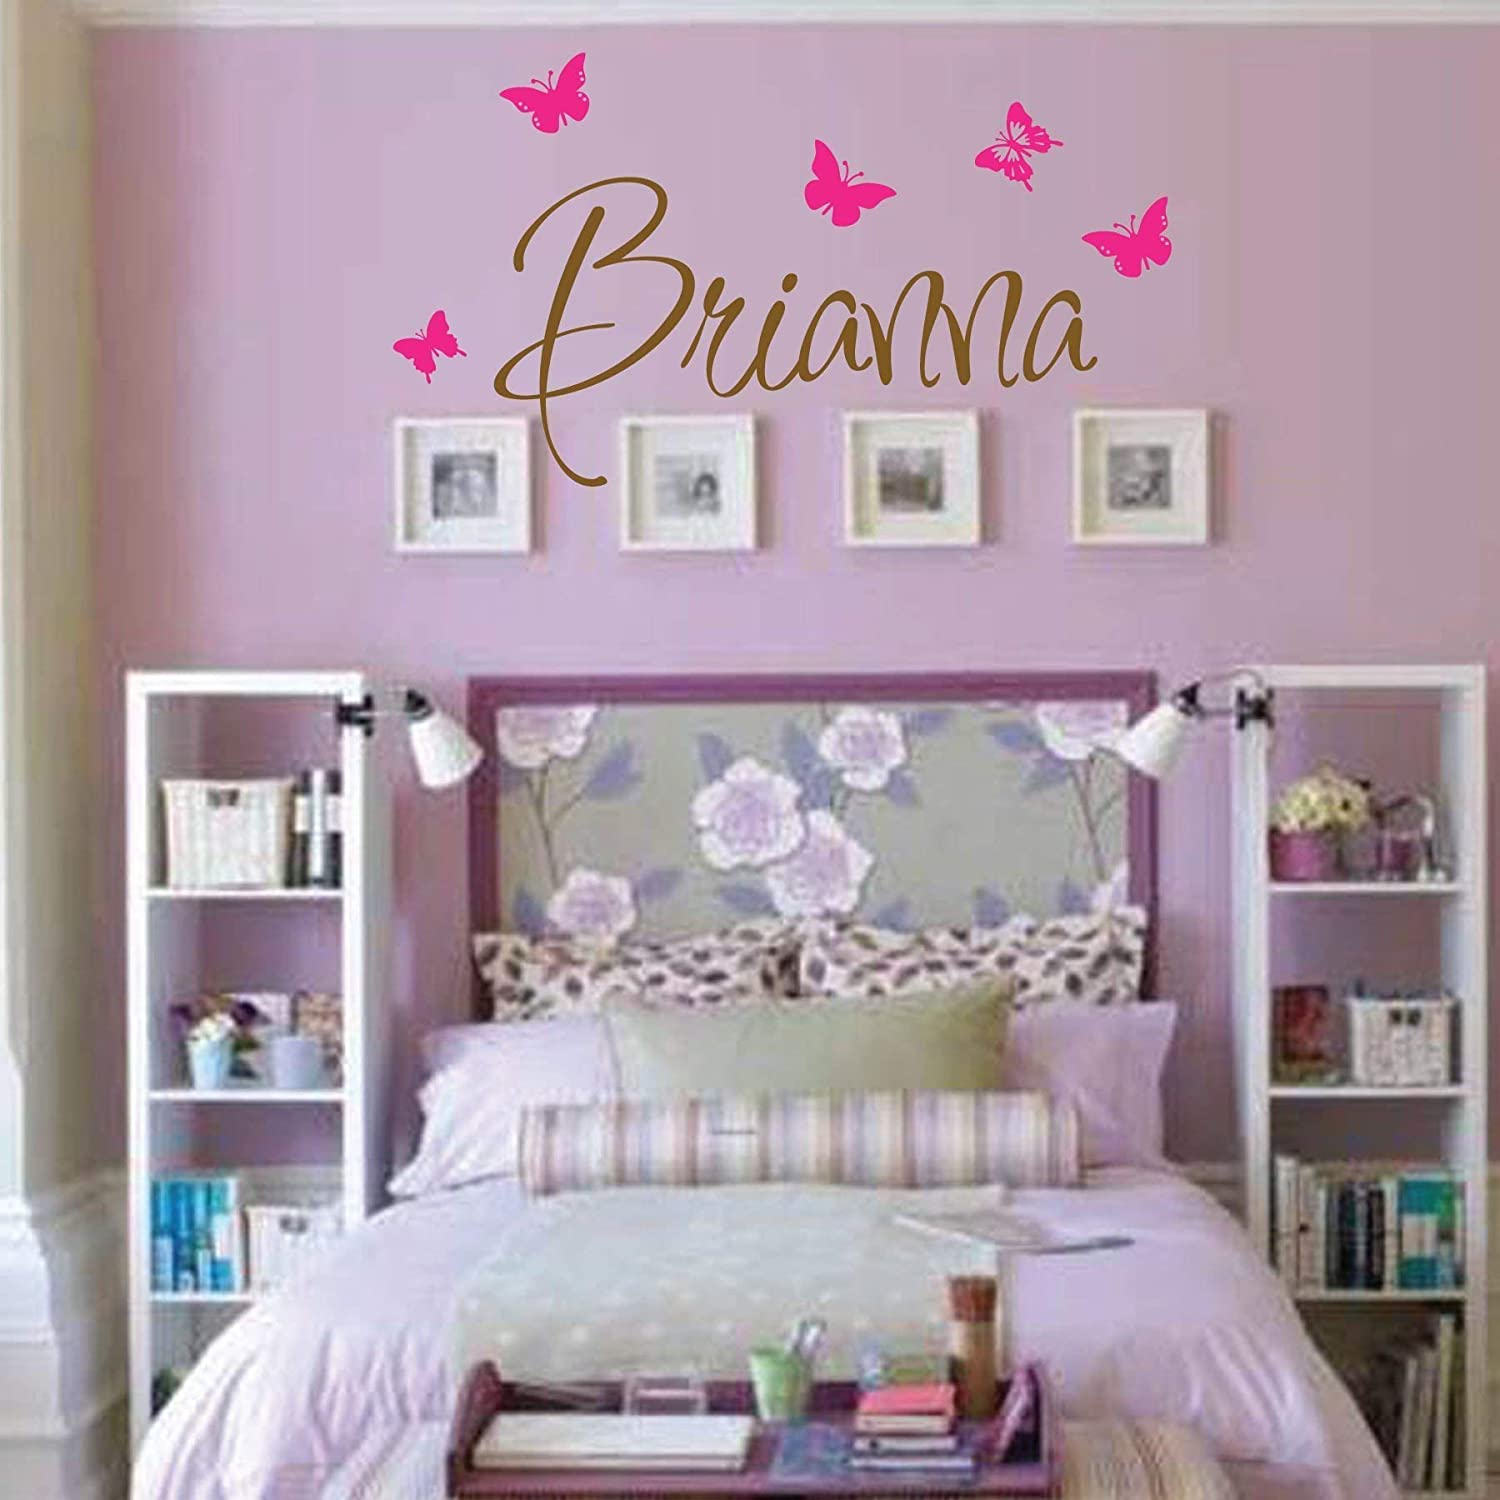 B016B0O0F8 Personalized Monogram Kids Wall Decals - Girls Wall Decal- Name Vinyl Lettering - baby girl nursery wall decal Brianna 71qF2BUUtGTL